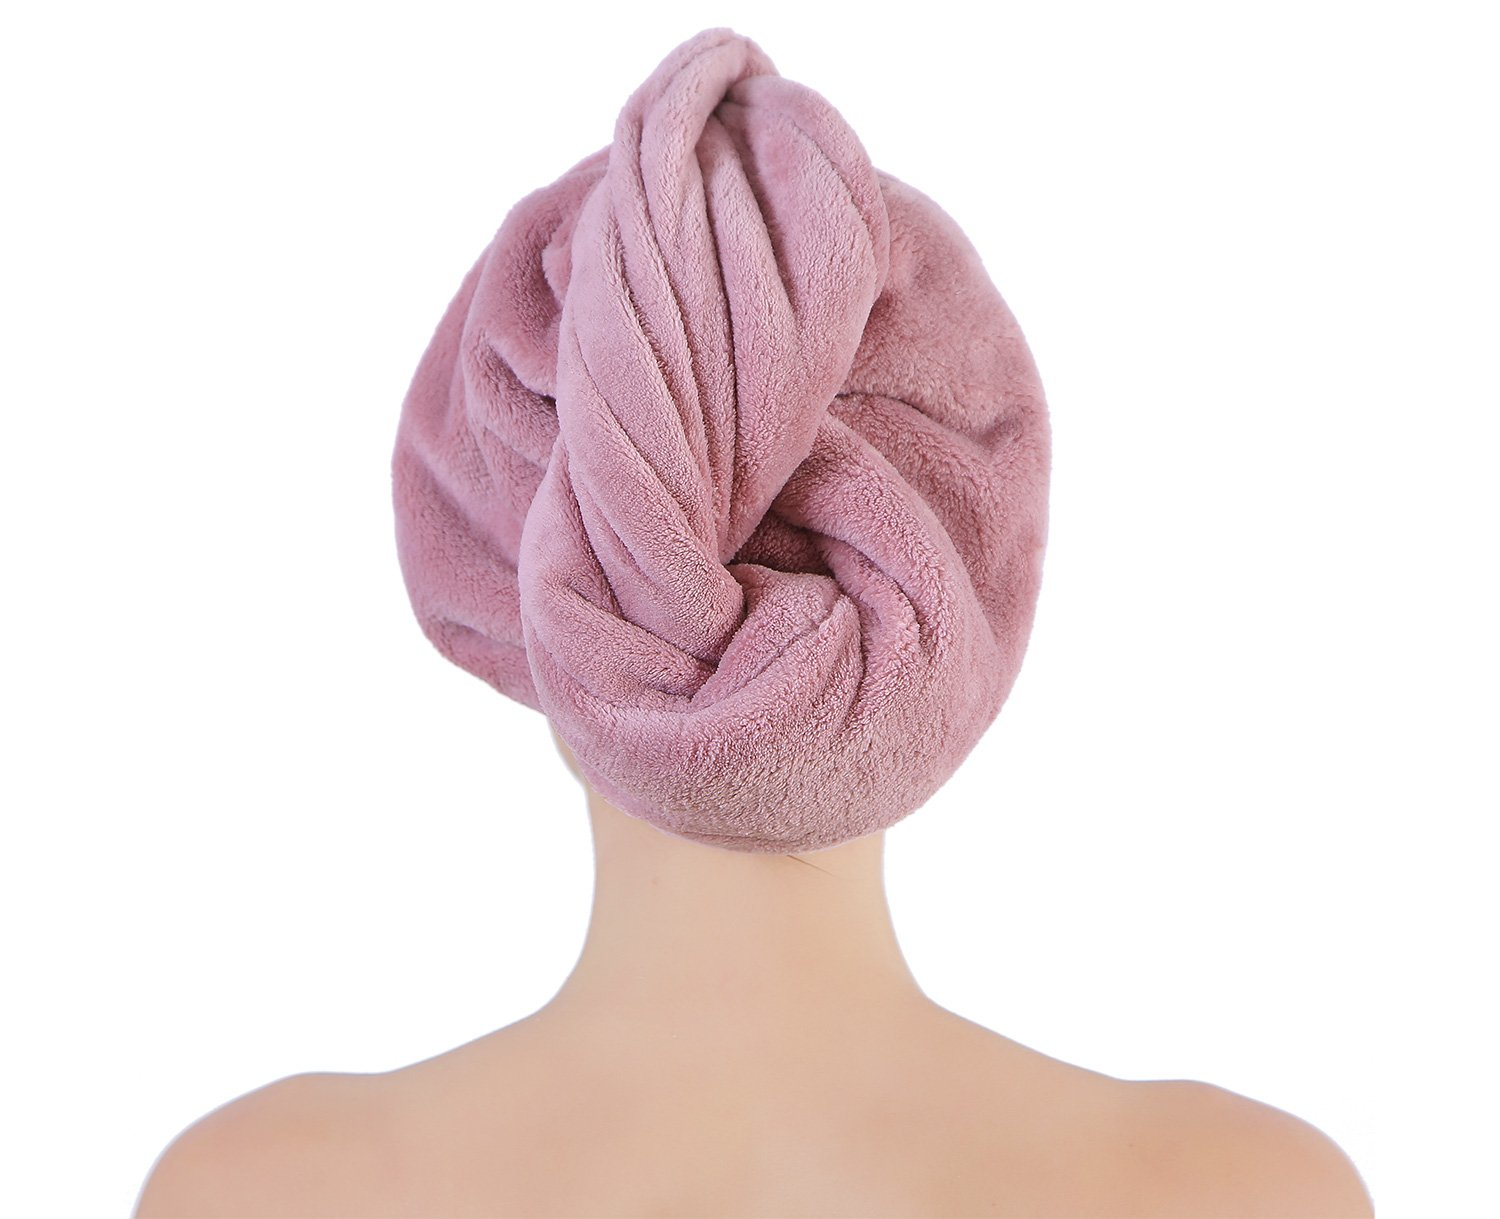 2 Pack Microfiber Hair Twist Towel Double Layer Designed Super Absorbent & Fast Drying Turban Wrap for Women Girls by Sanli (light orange+purple) by Sanli (Image #3)